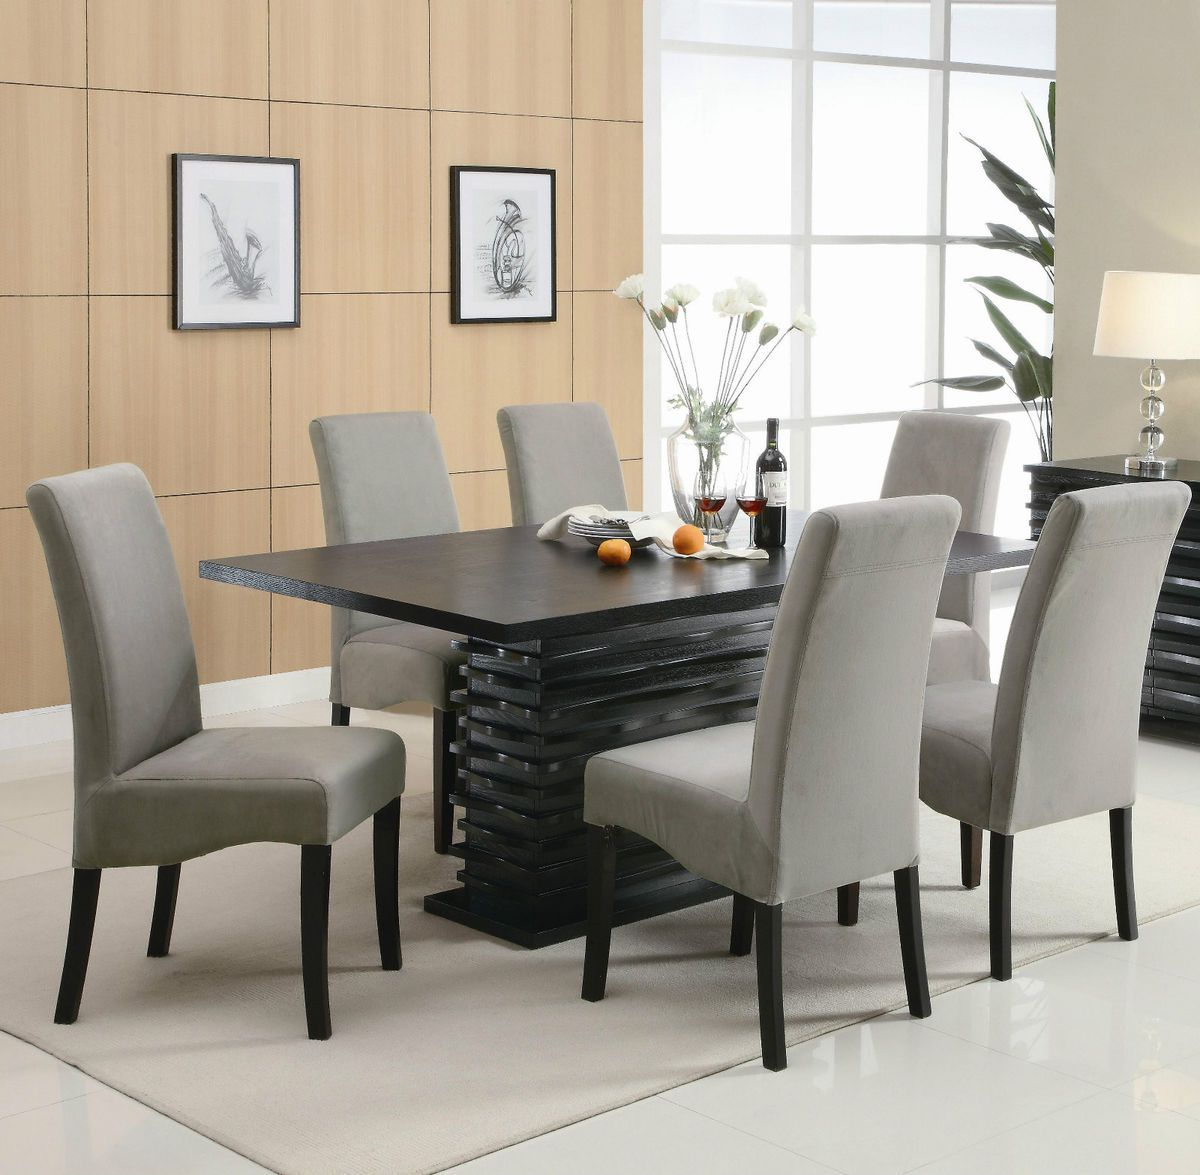 Dining Table Modern Furniture Contemporary Black Dining Table